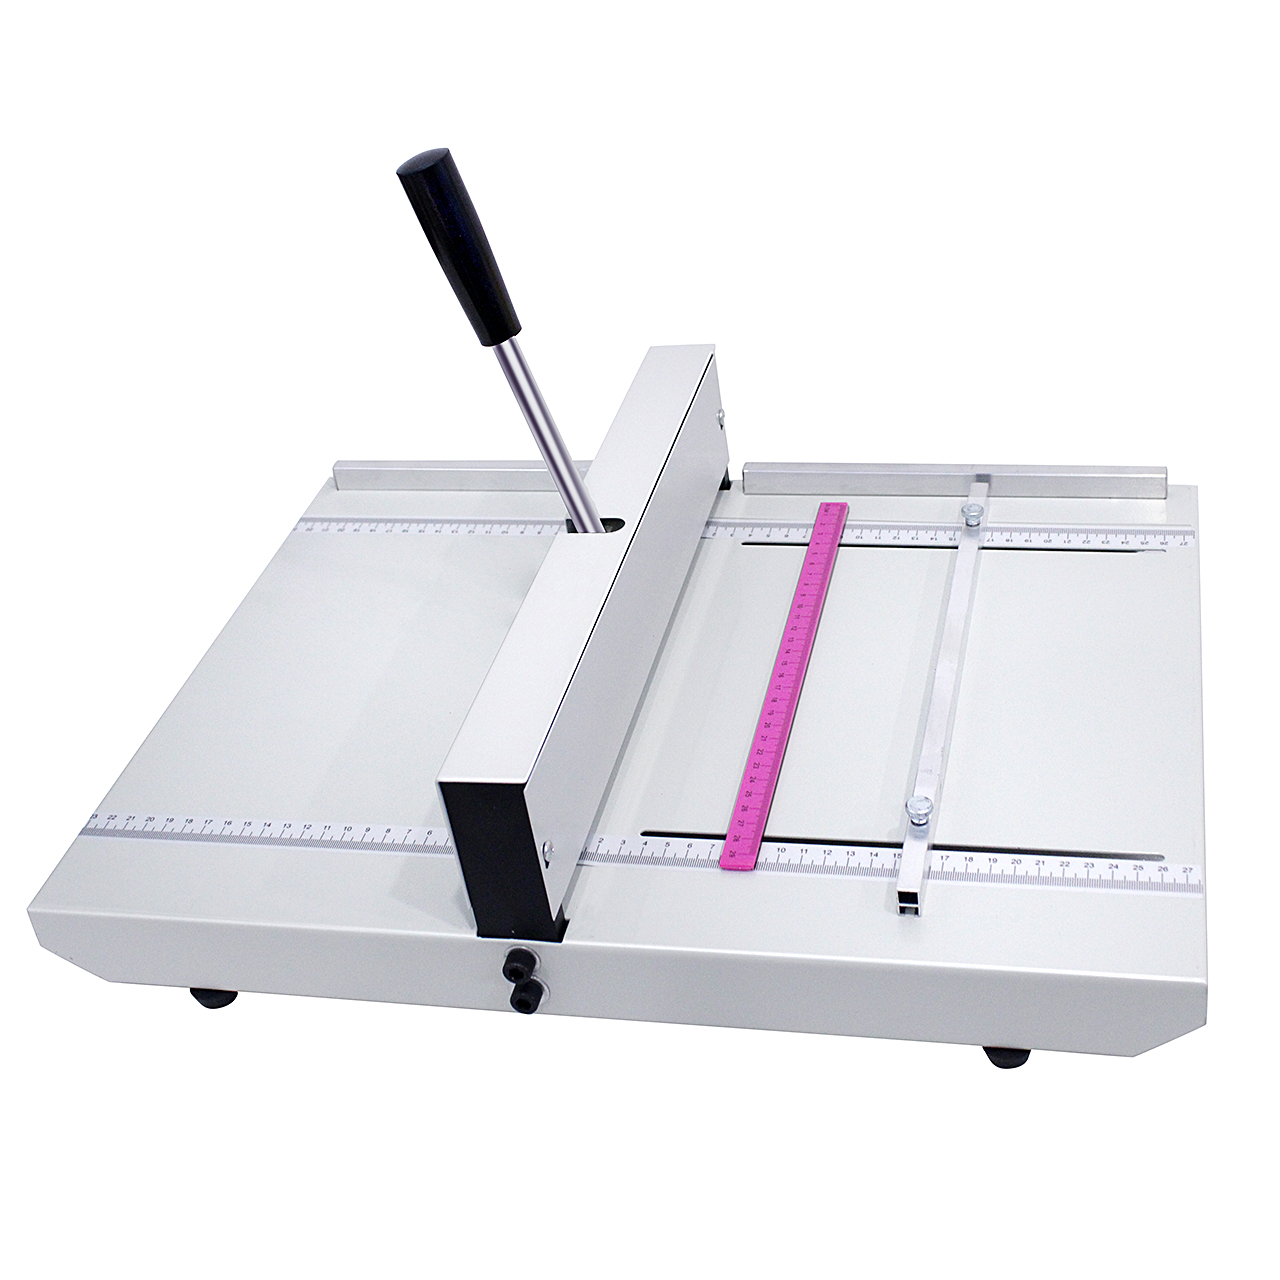 Office  Manual Paper Creaser Creasing Machine 350mm,A3 A4 Card Covers, High Gloss Covers